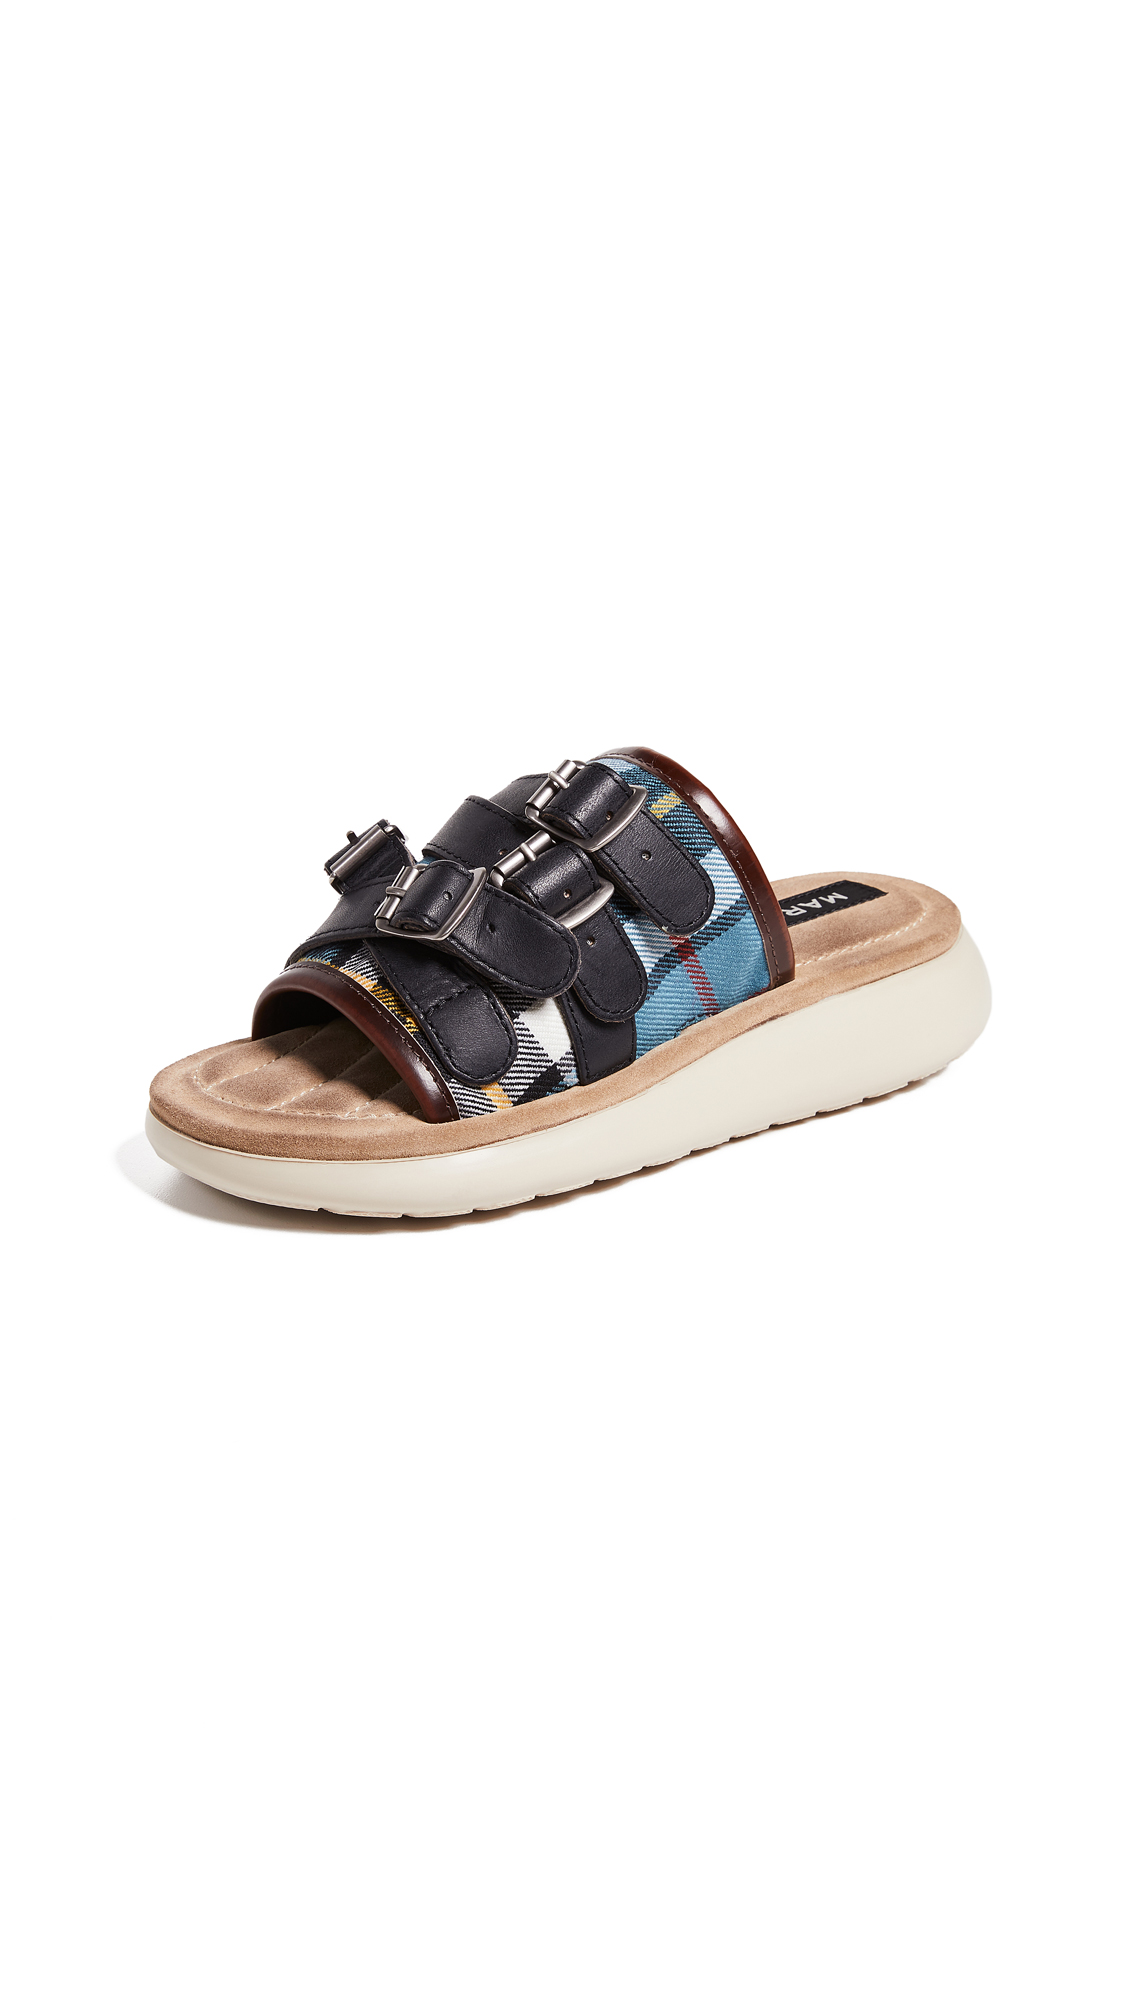 Marc Jacobs Emerson Multi Strap Sport Sandals - Blue Multi